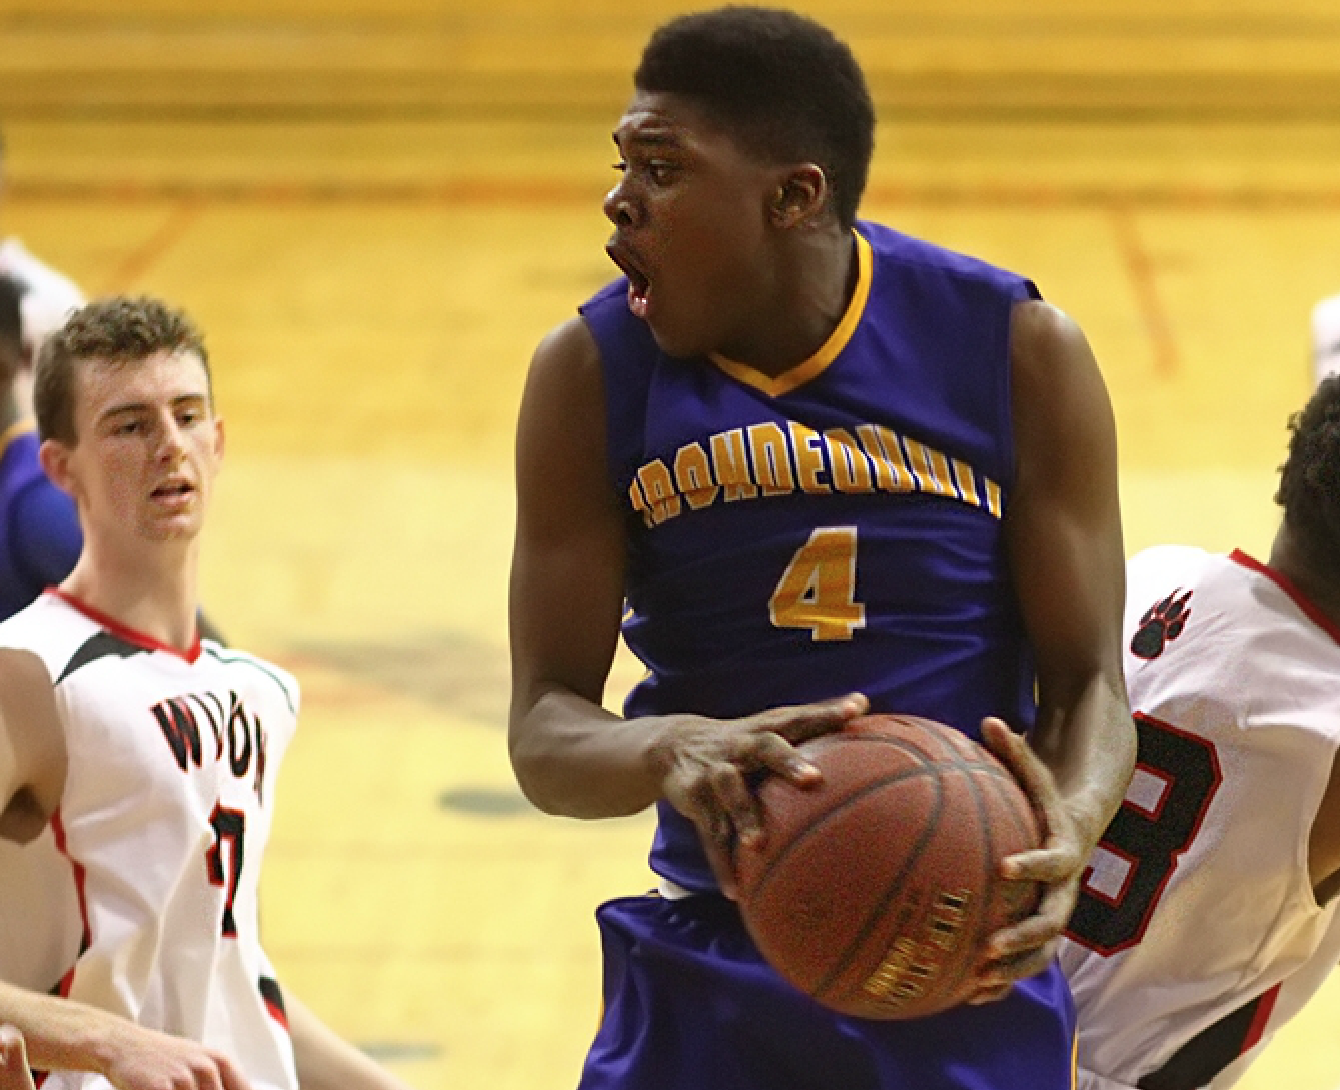 Irondequoit outlasts Fairport in battle of undefeateds